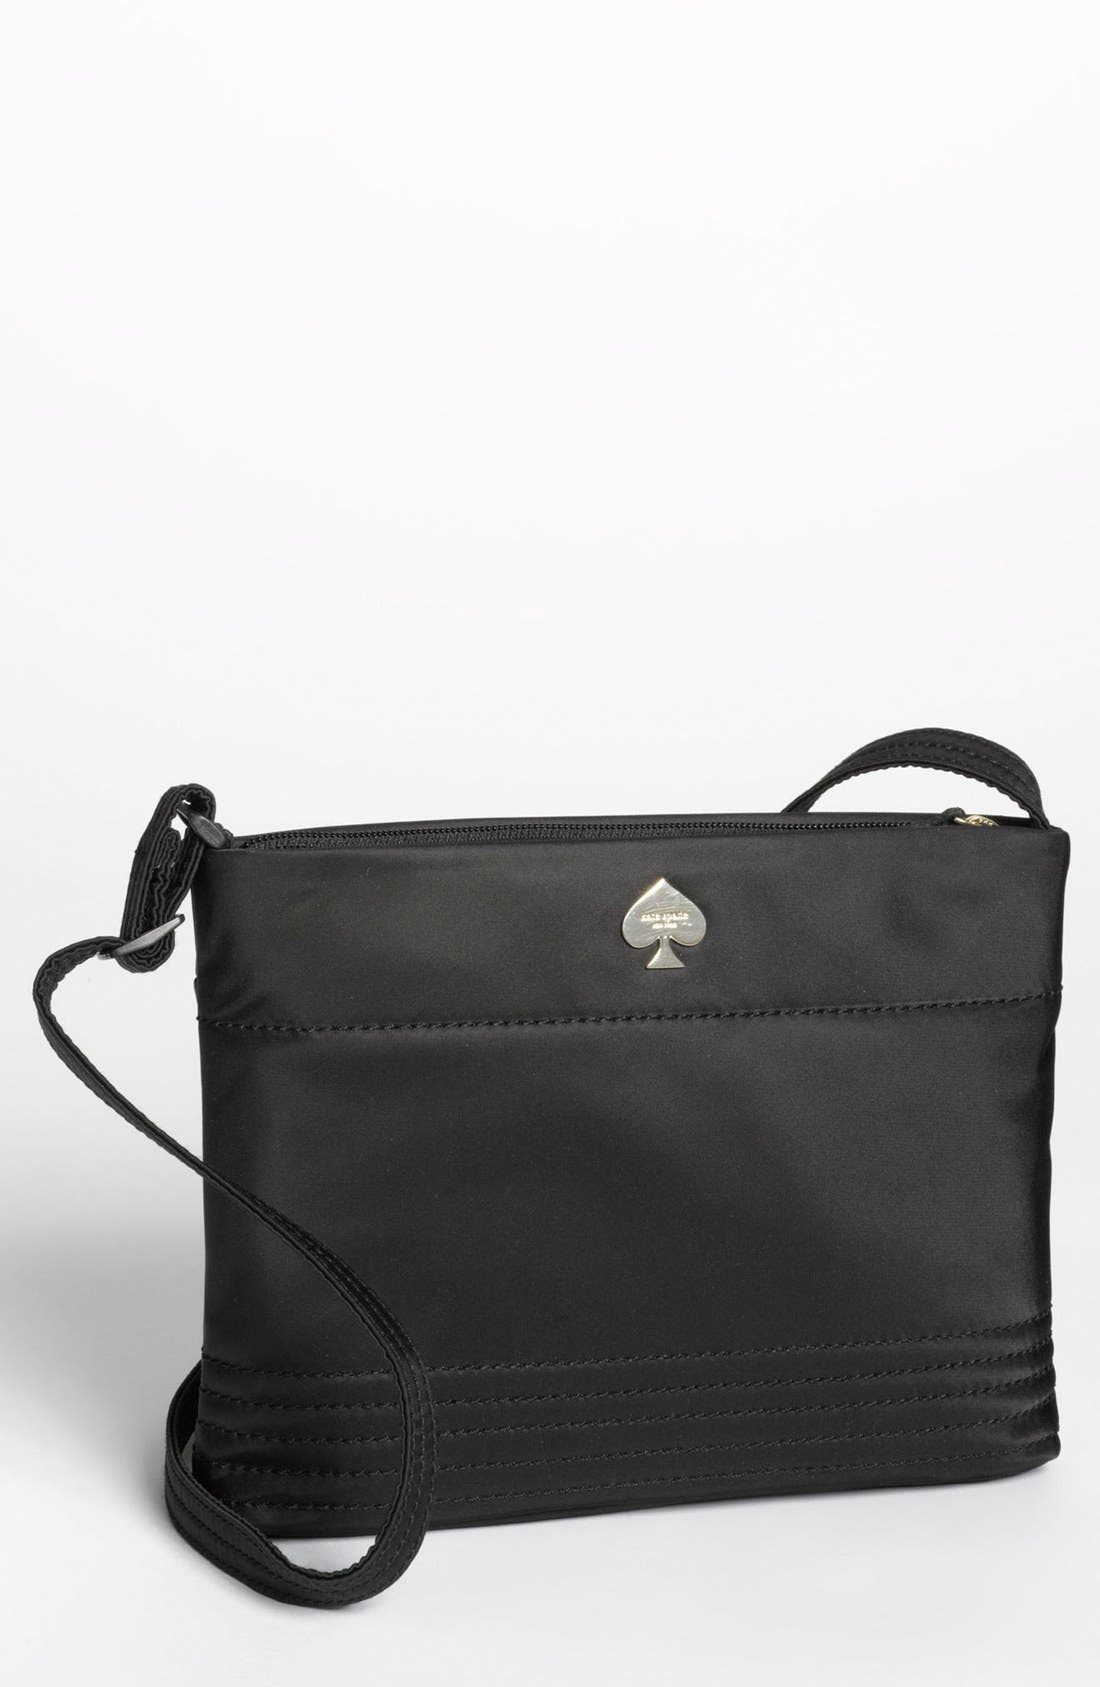 Main Image - kate spade new york 'flatiron - cammy' crossbody bag